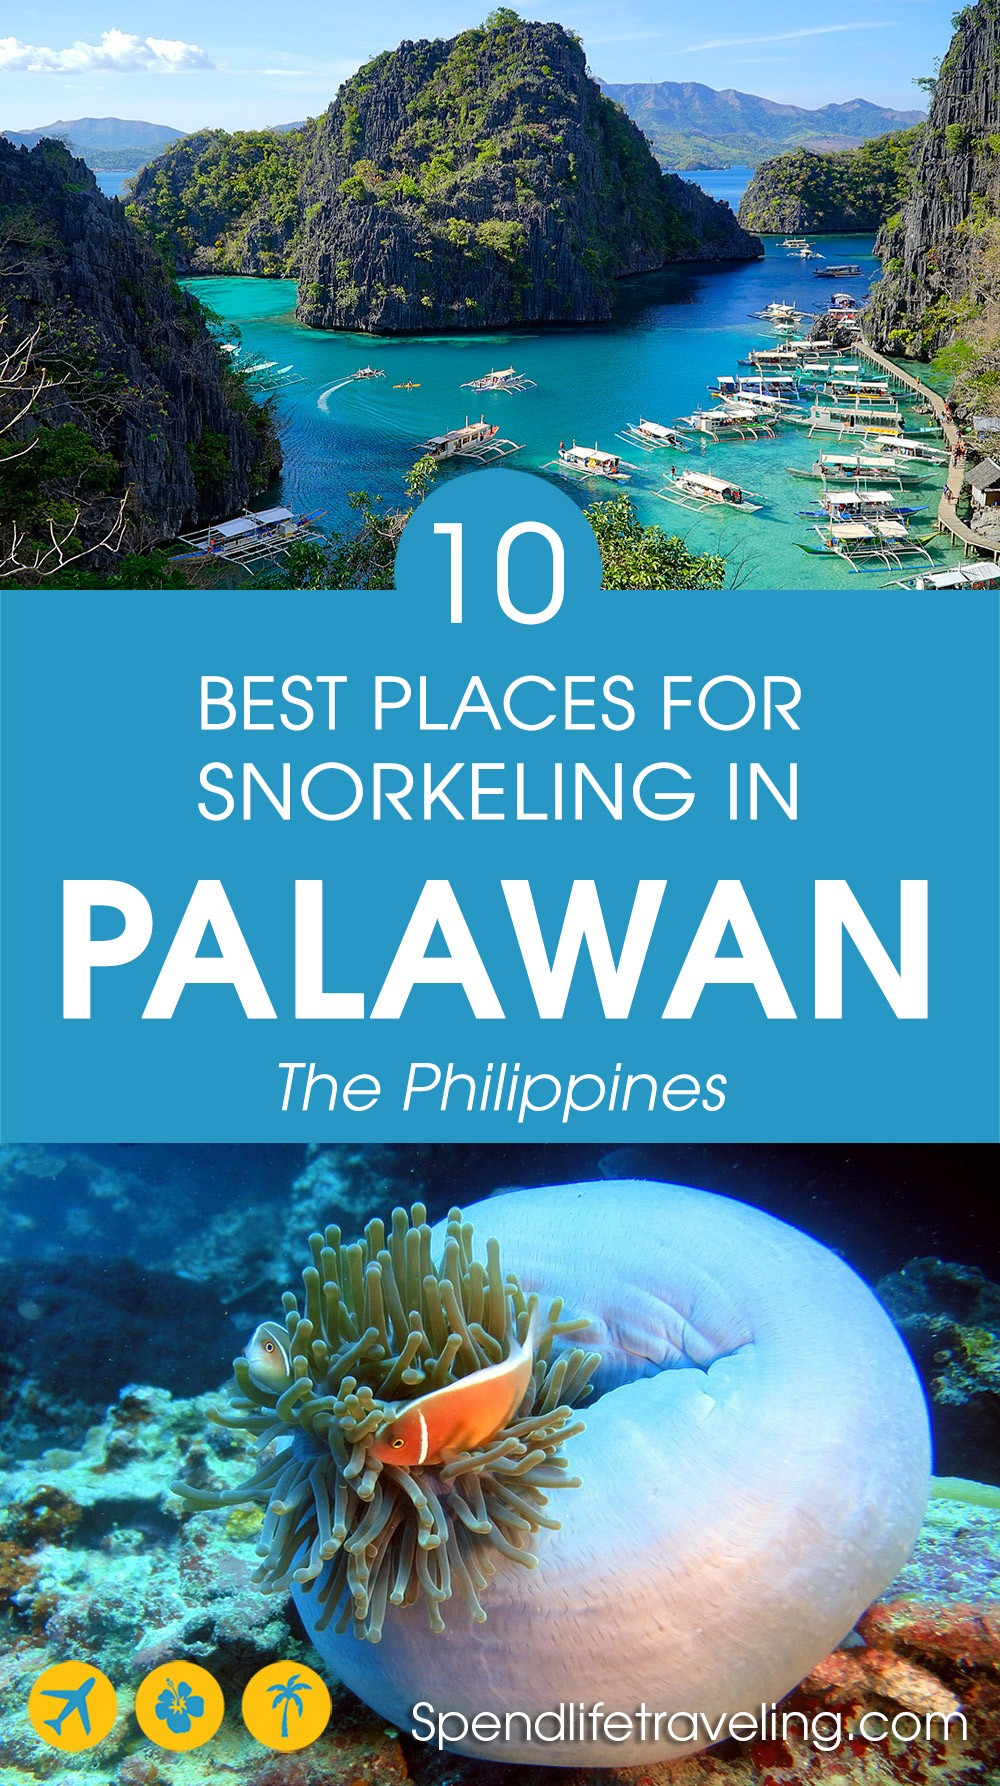 10 great snorkeling spots in Palawan, Philippines